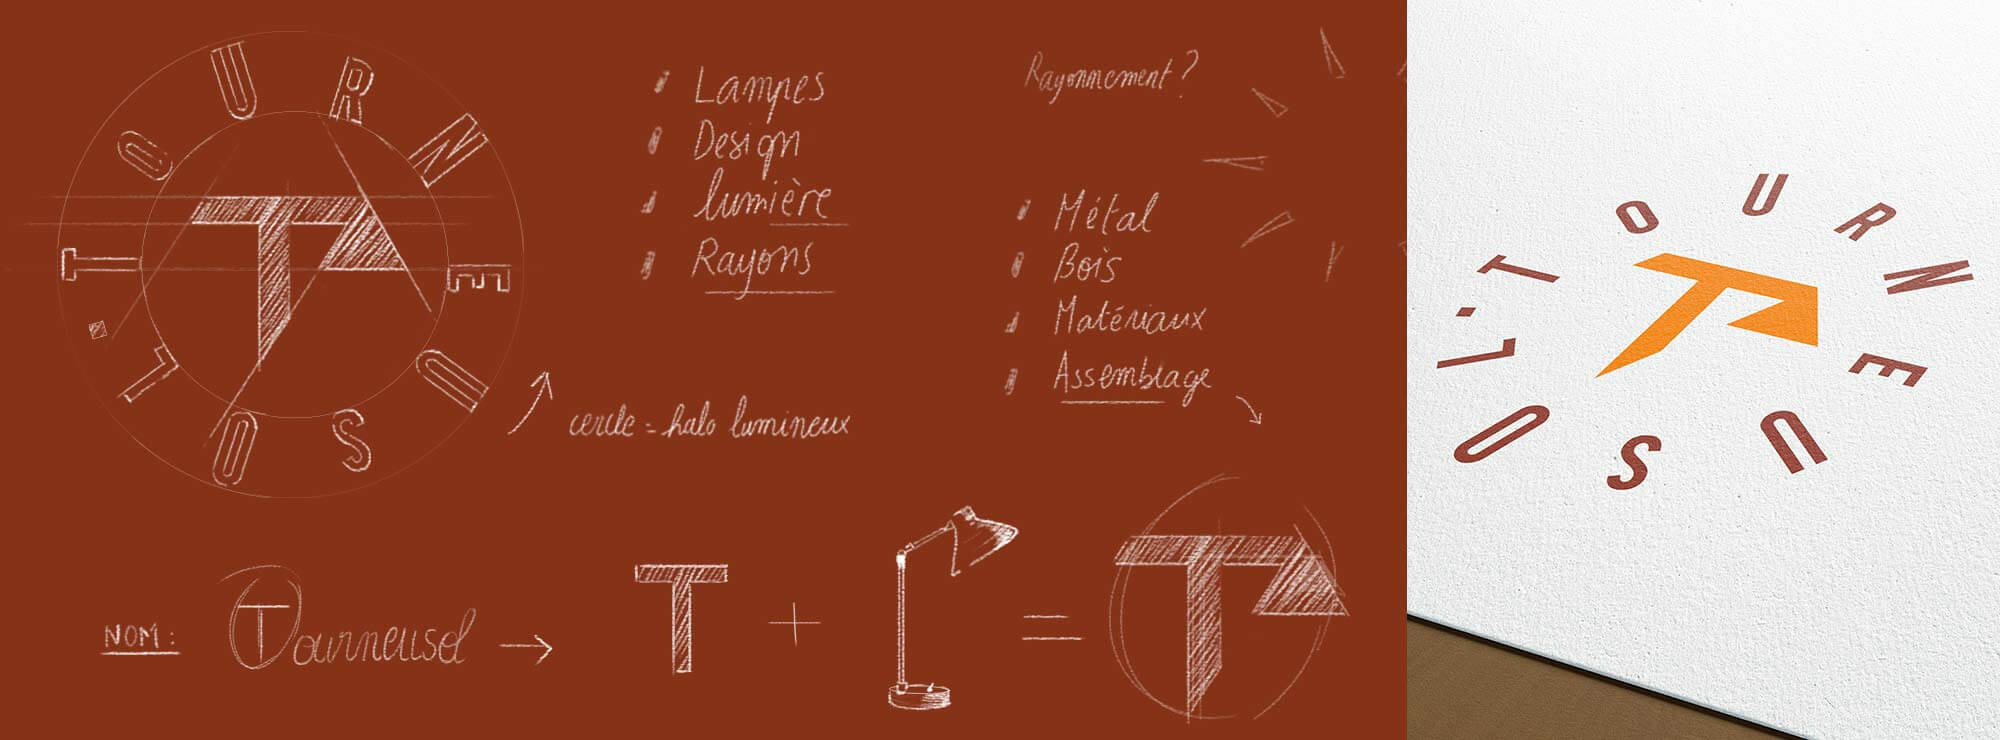 01 tourneusol logo recherches sketch lampe design identite brainstorming.jpg